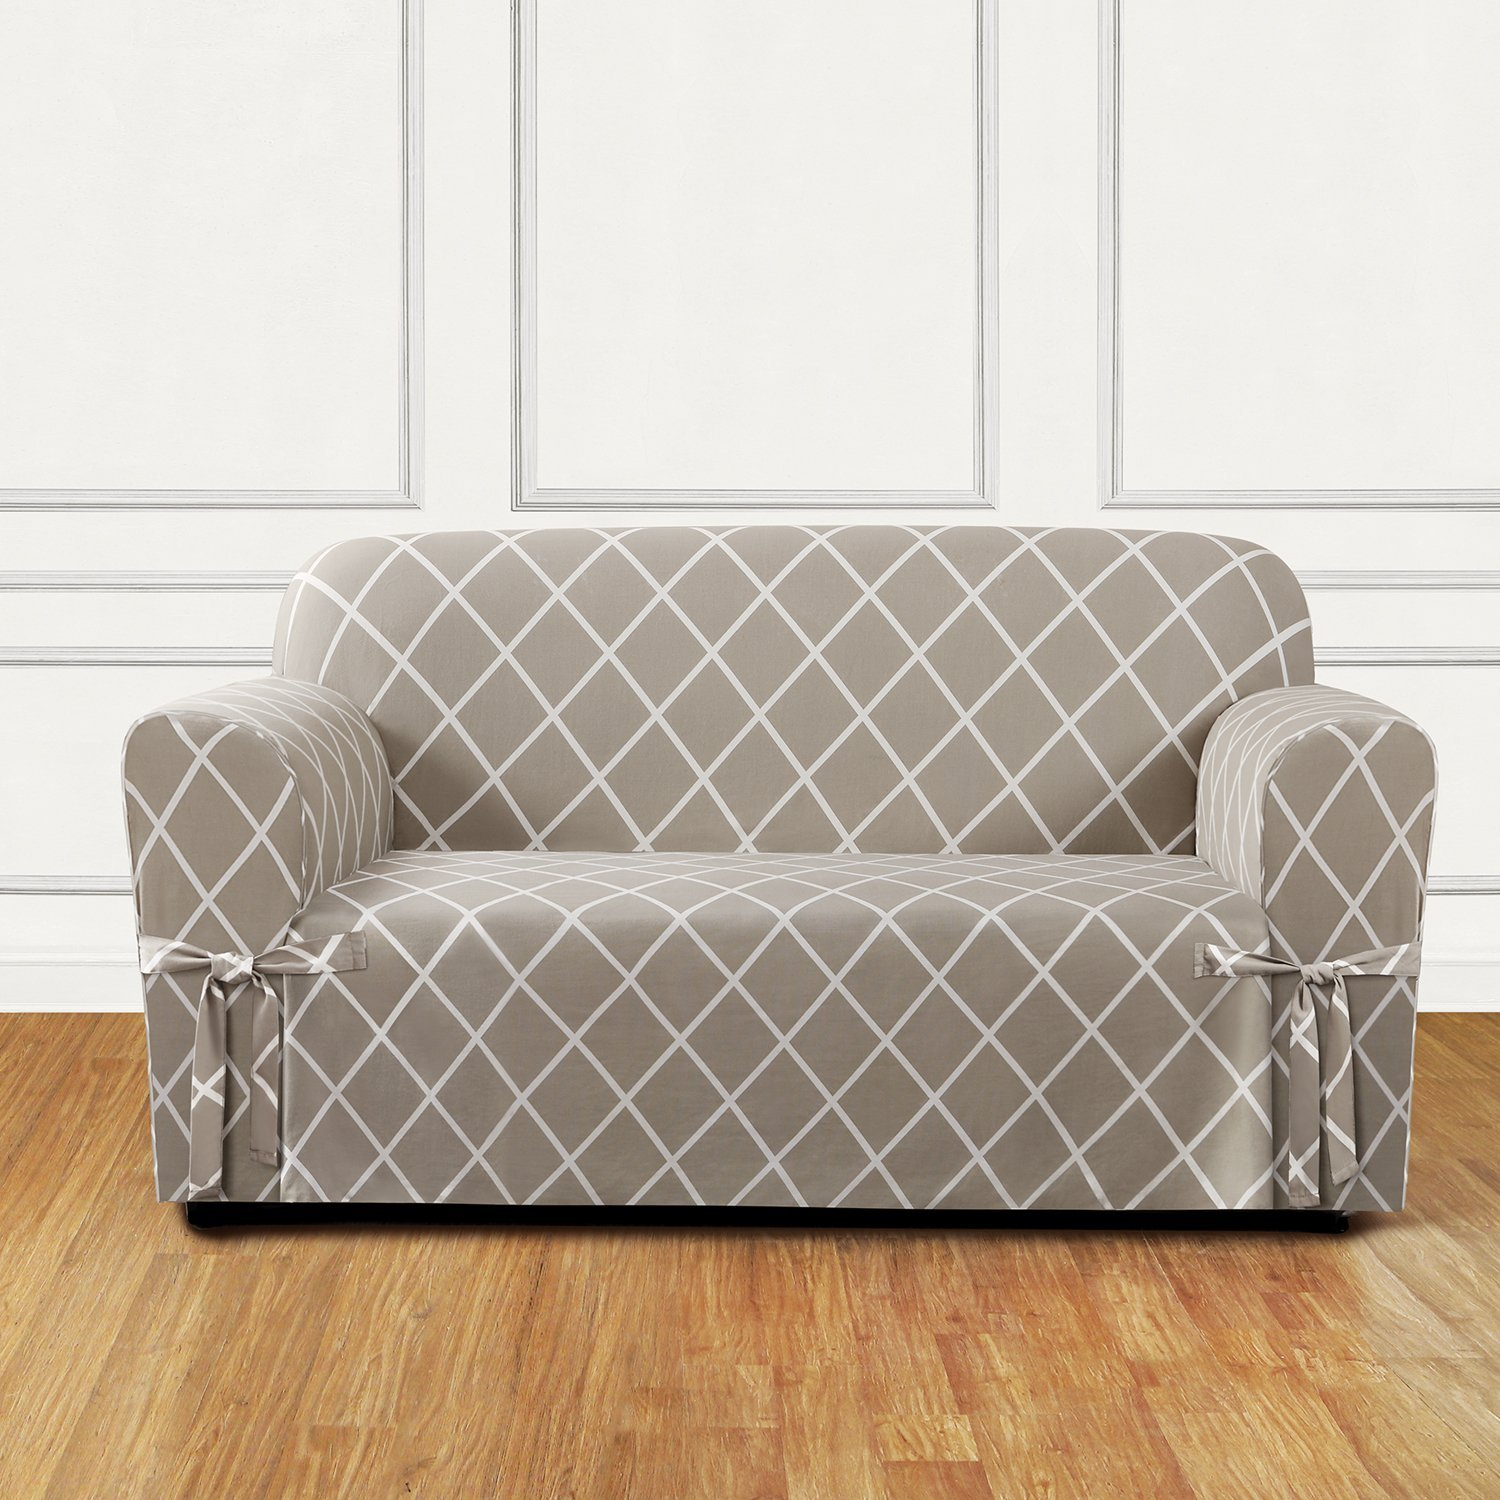 amazoncom sure fit lattice 1piece loveseat slipcover tan sf45864 home u0026 kitchen